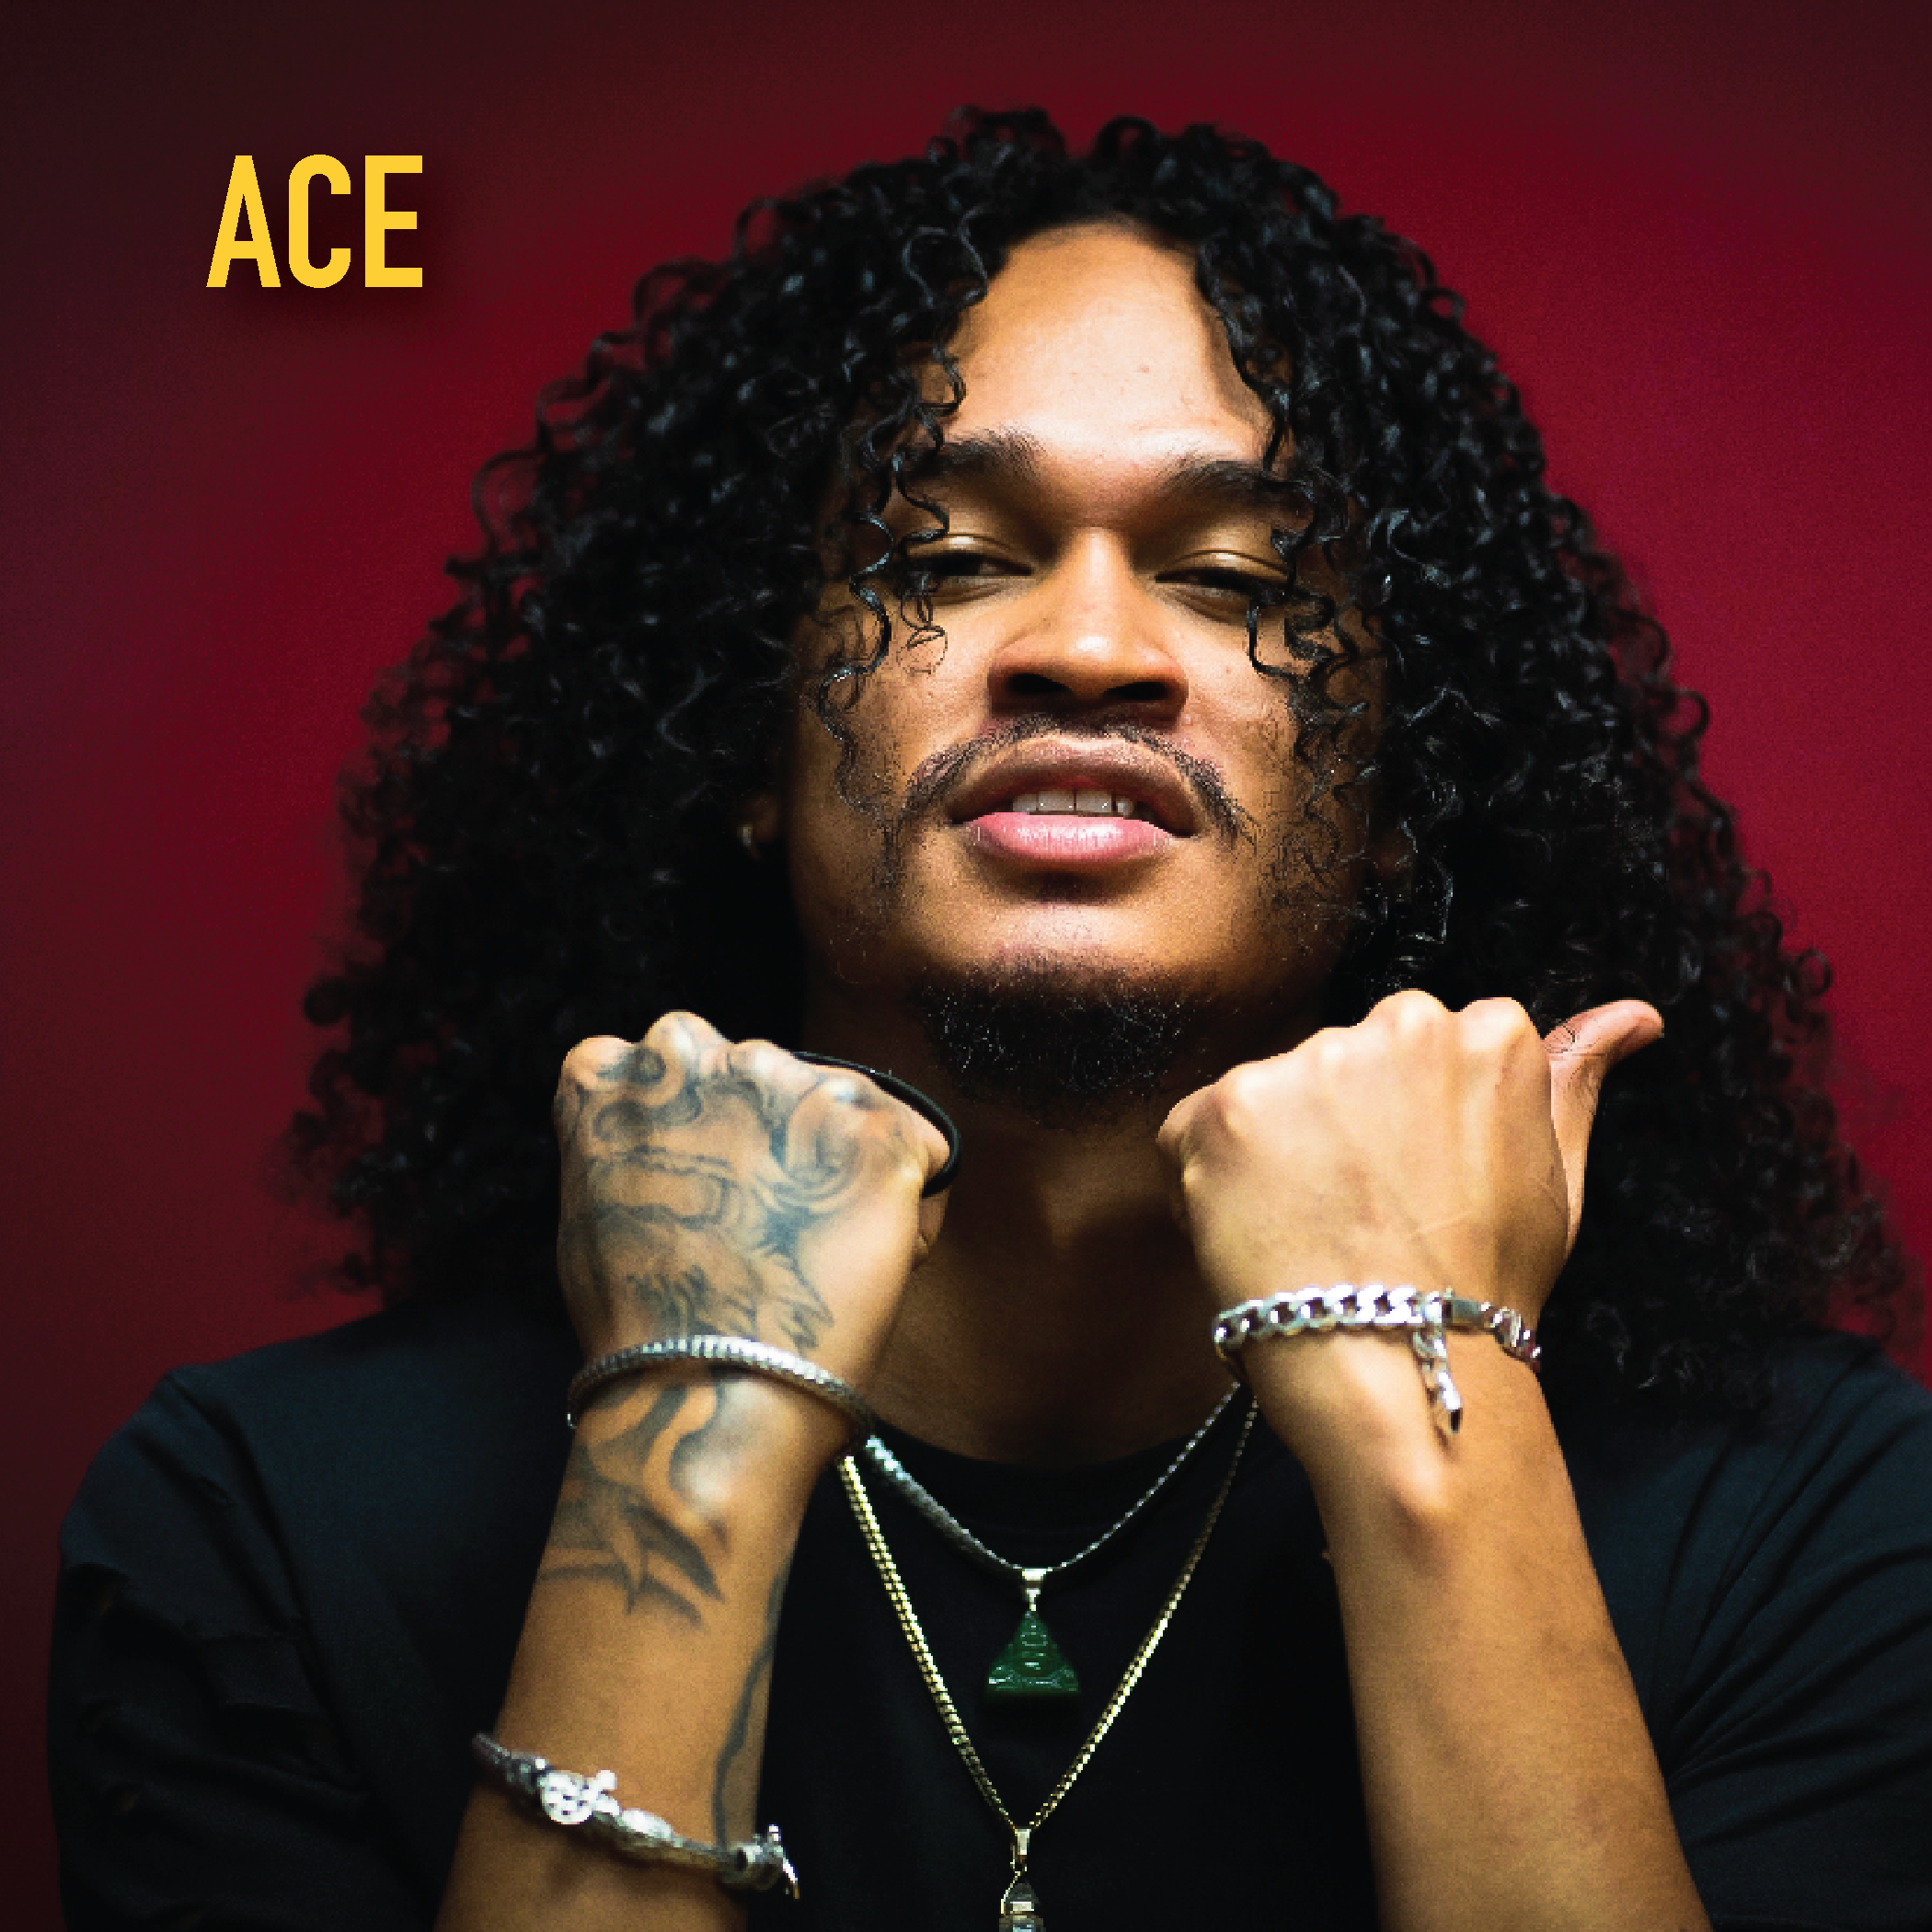 ACE_profile-06.png